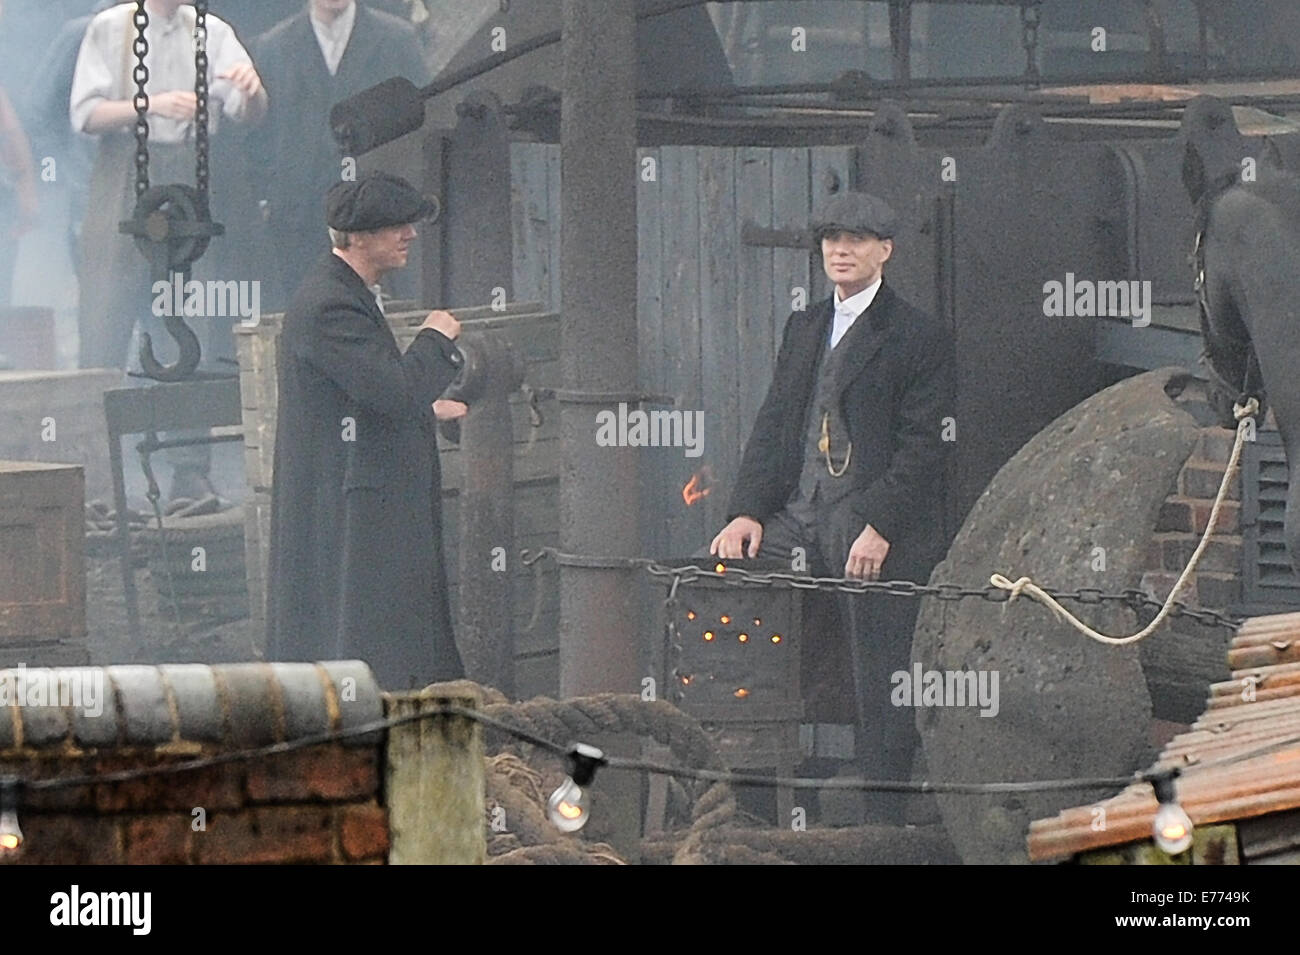 Peaky Blinders Stock Photos & Peaky Blinders Stock Images